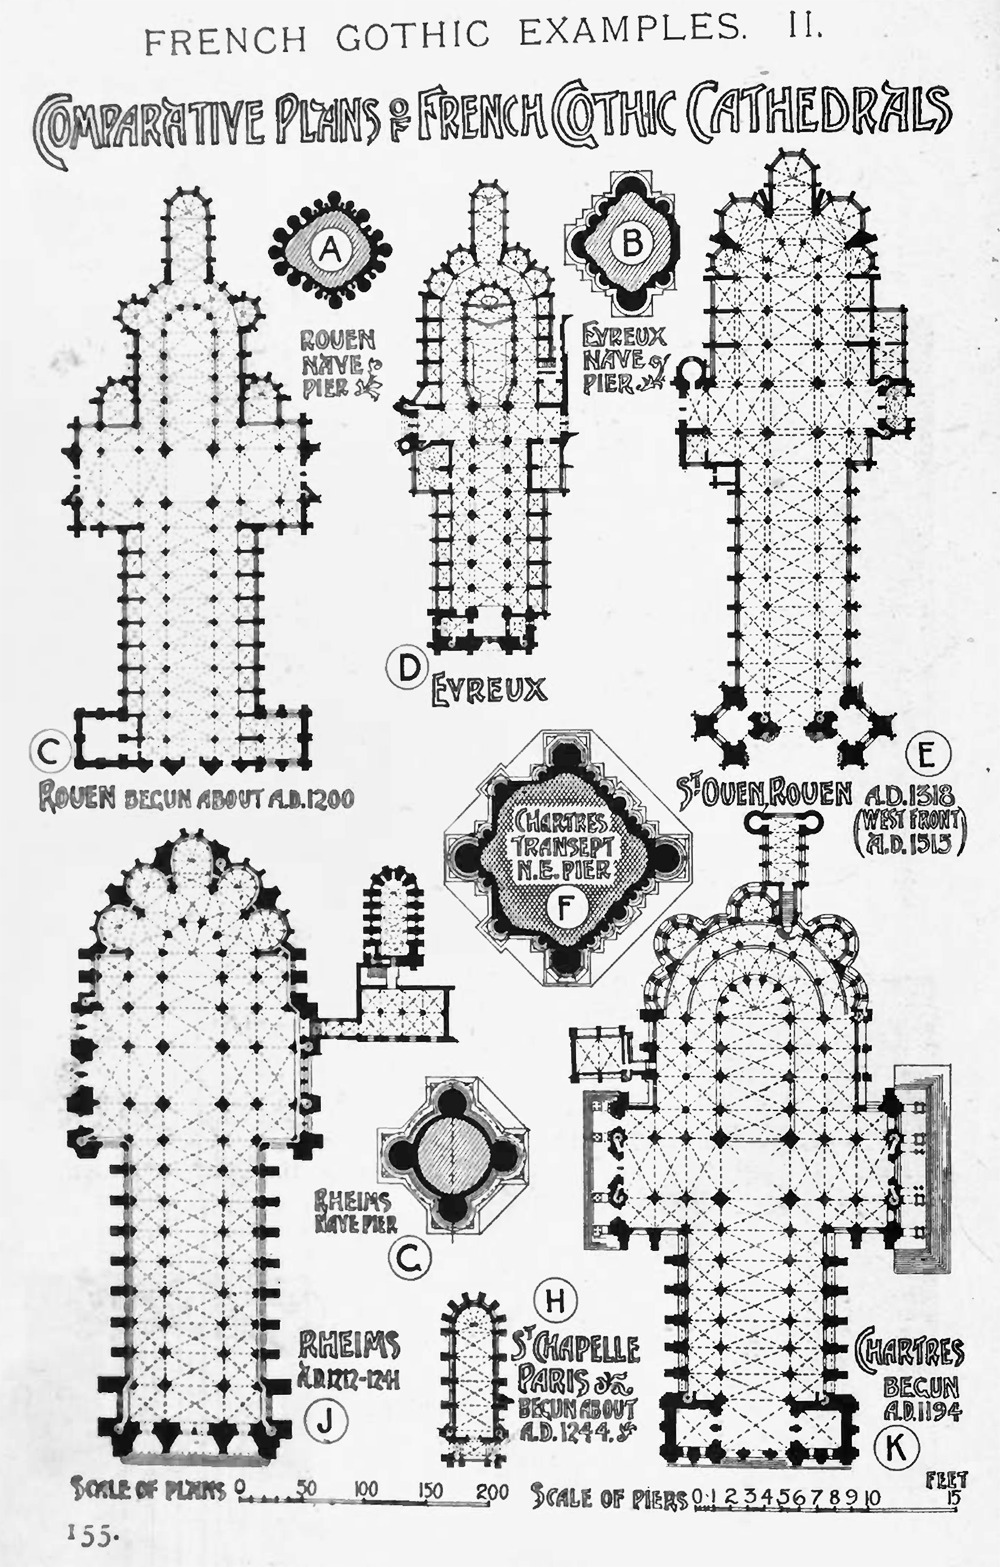 European Architecture Comparative Plans Of French Gothic